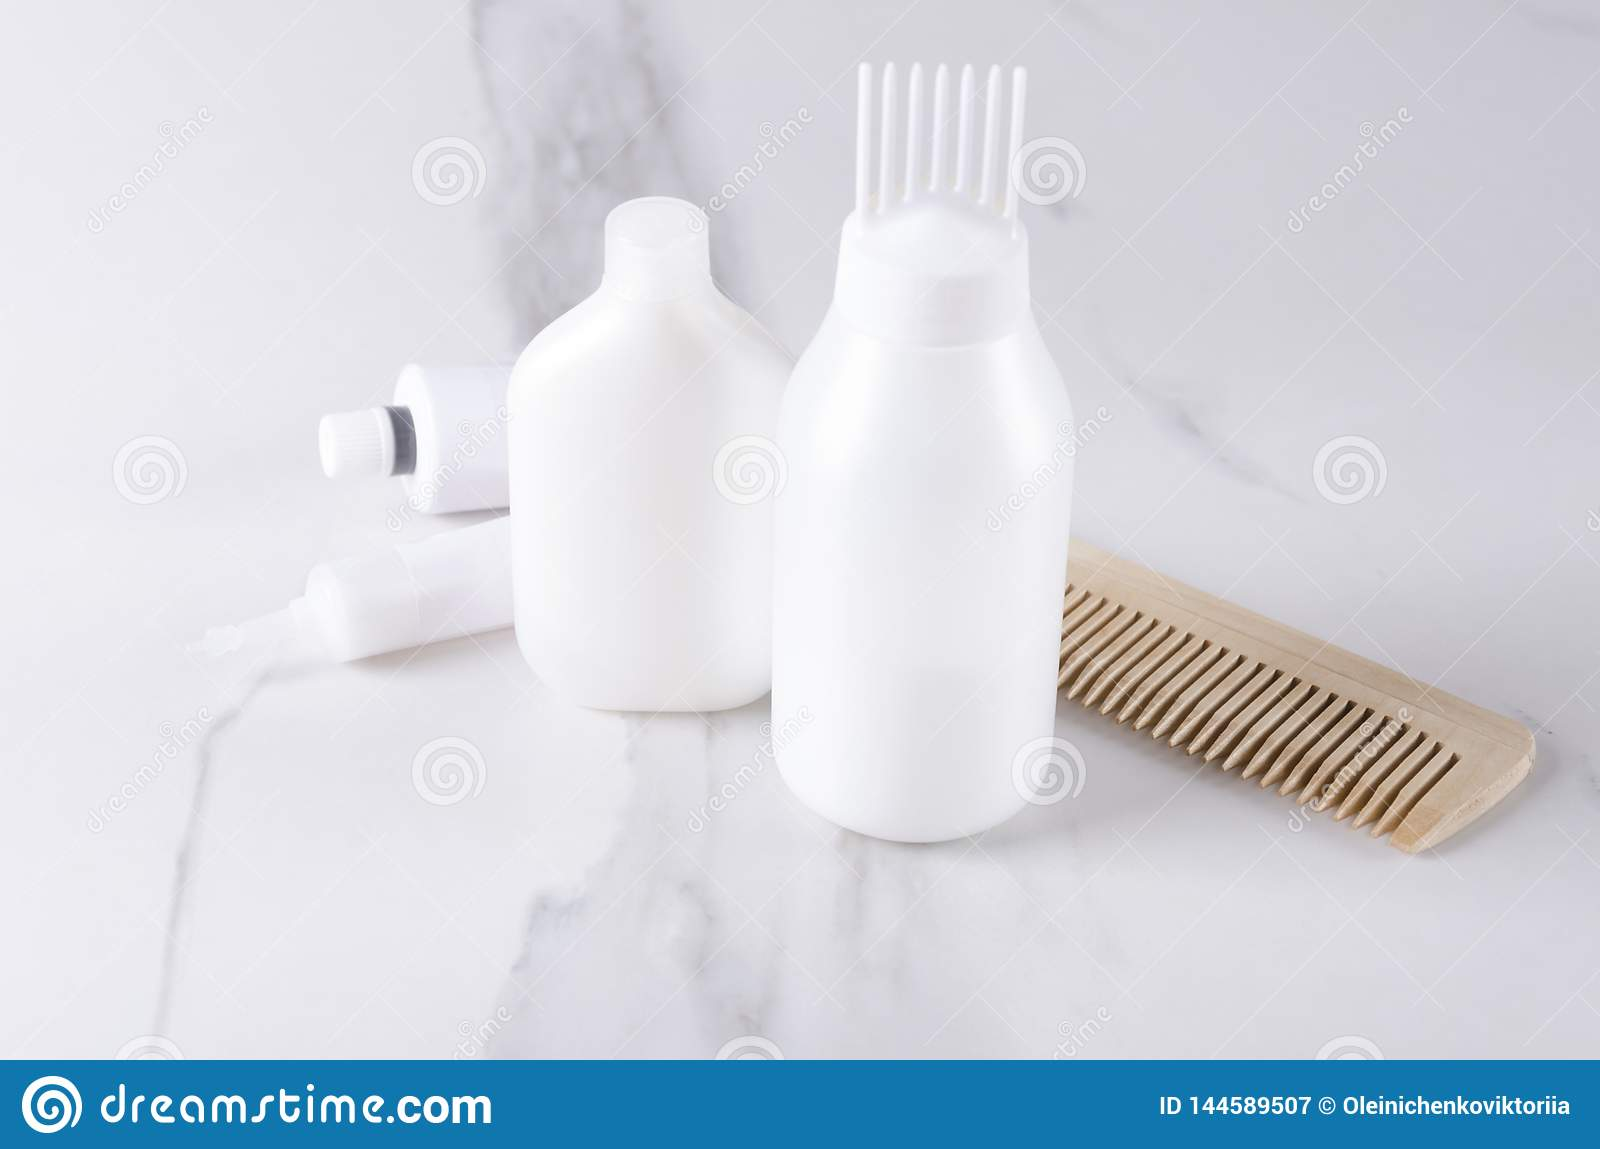 Professional hair care products,tubes for dye hair,wooden comb on white marble table.Concept of dye hair